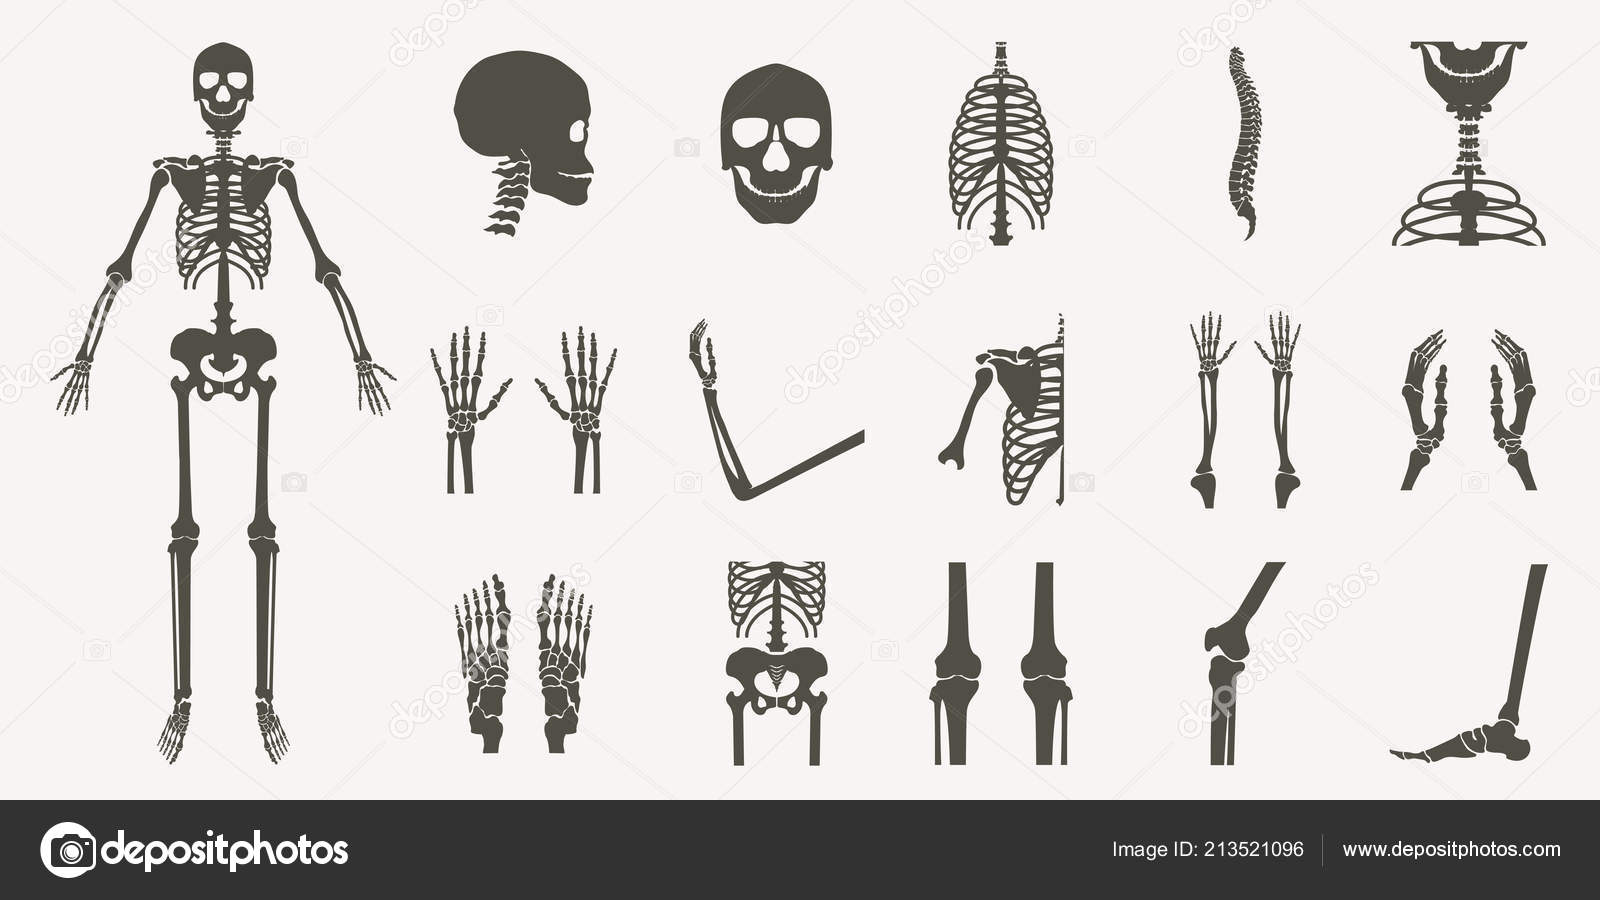 Human Bones Orthopedic Skeleton Silhouette Collection Set